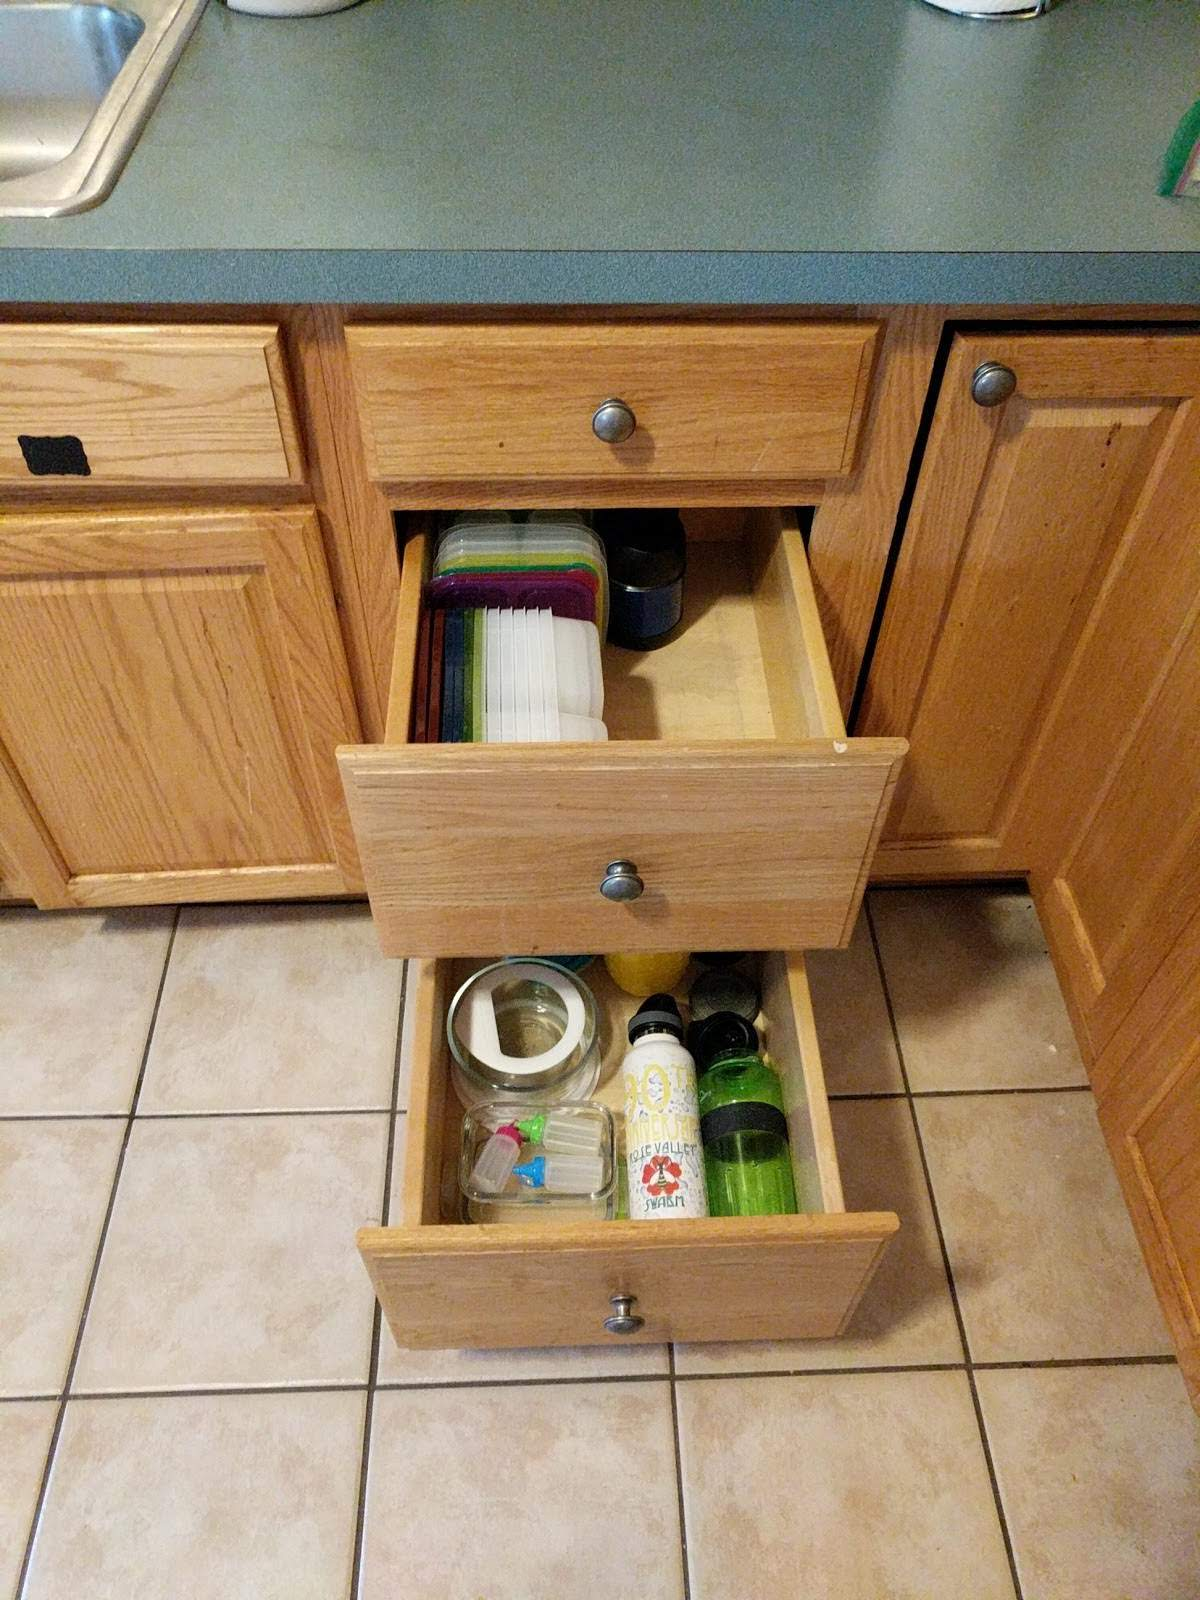 The lunch drawer